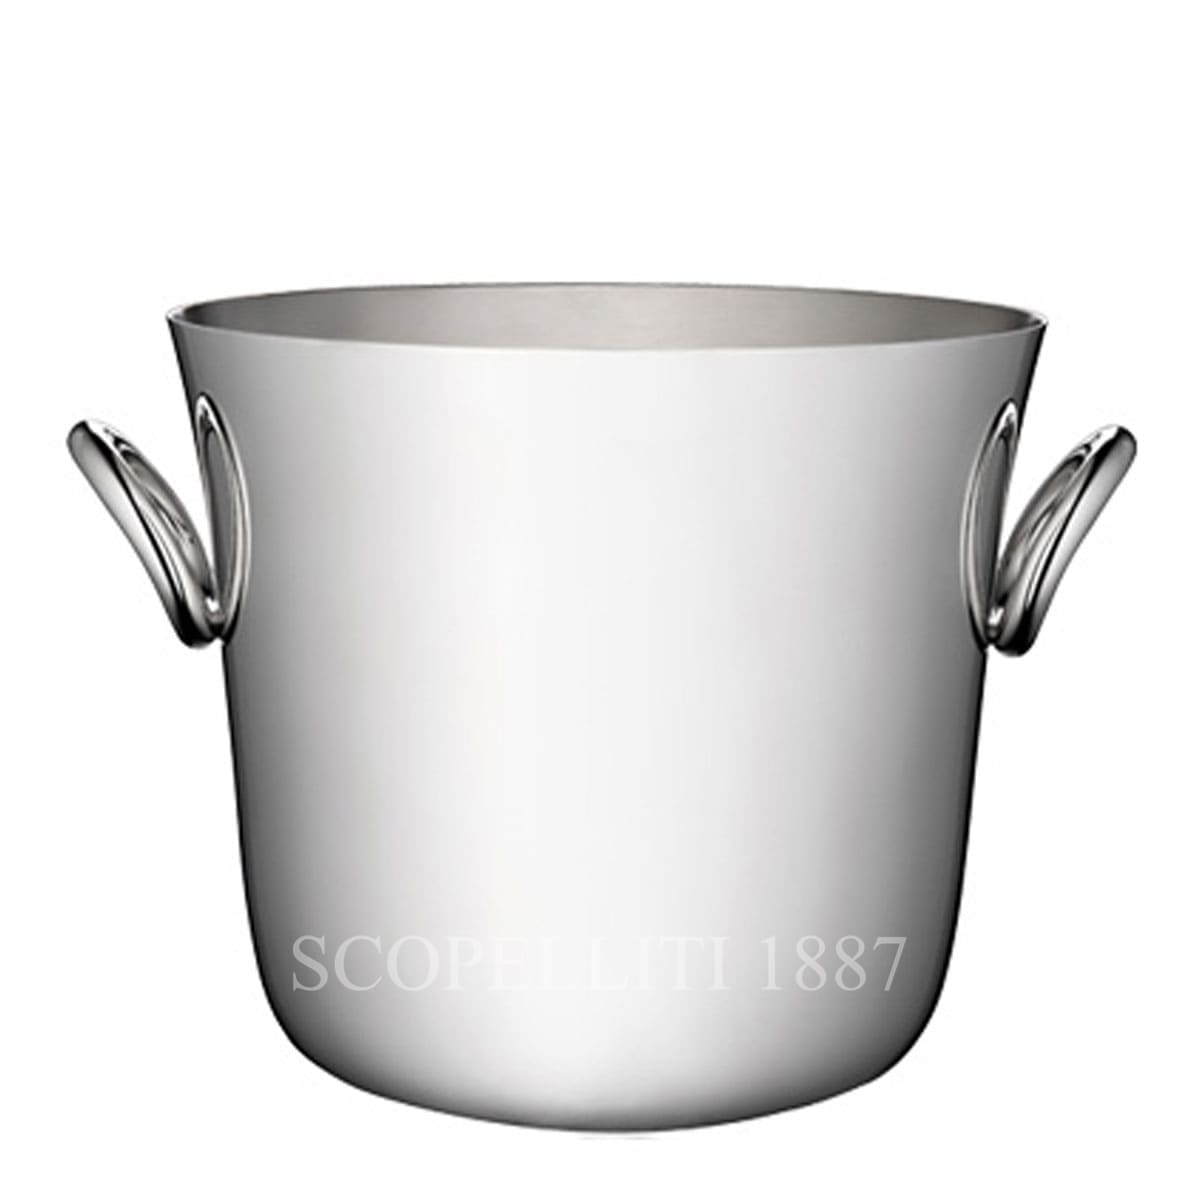 christofle silver plated vertigo ice bucket